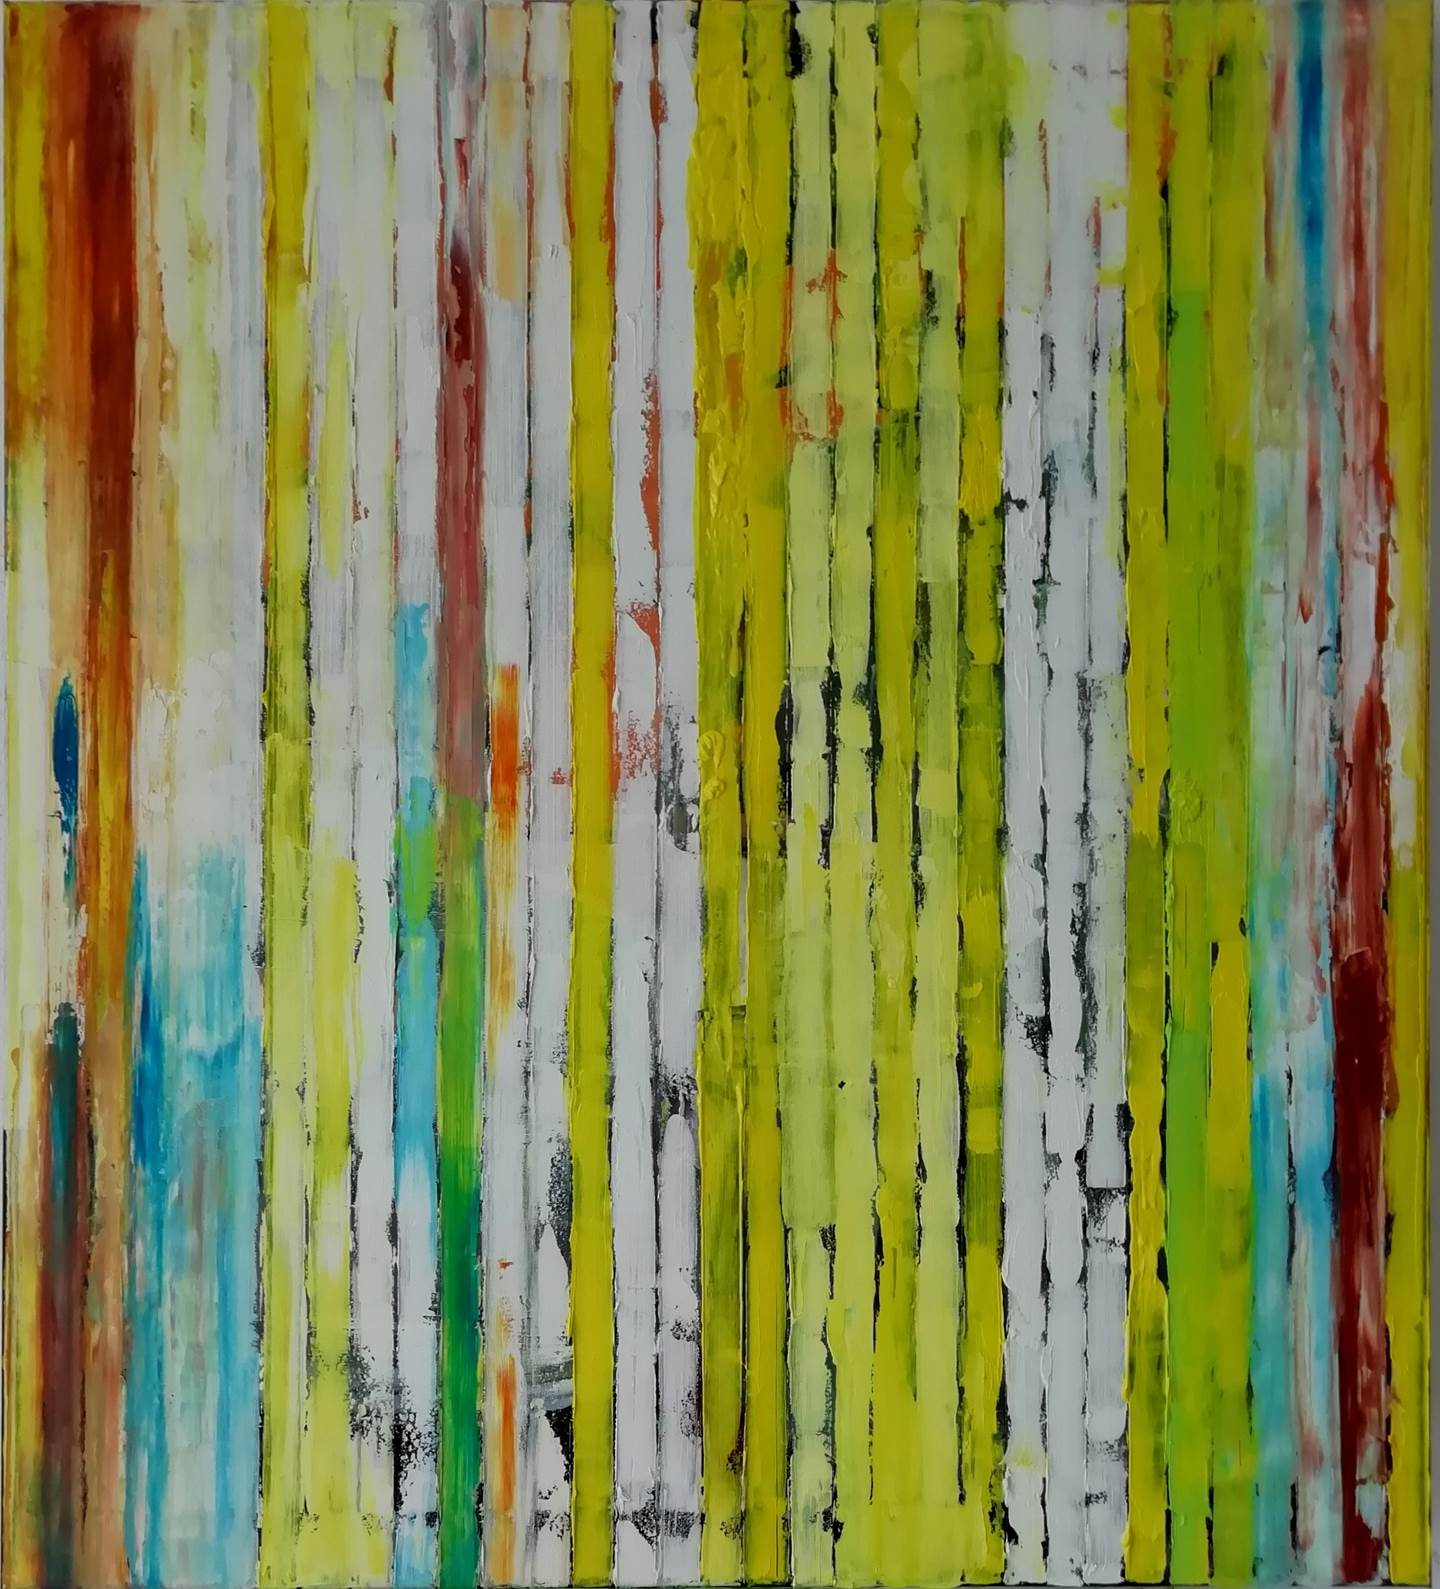 Spring, original Abstract Oil Painting by Francisco Santos